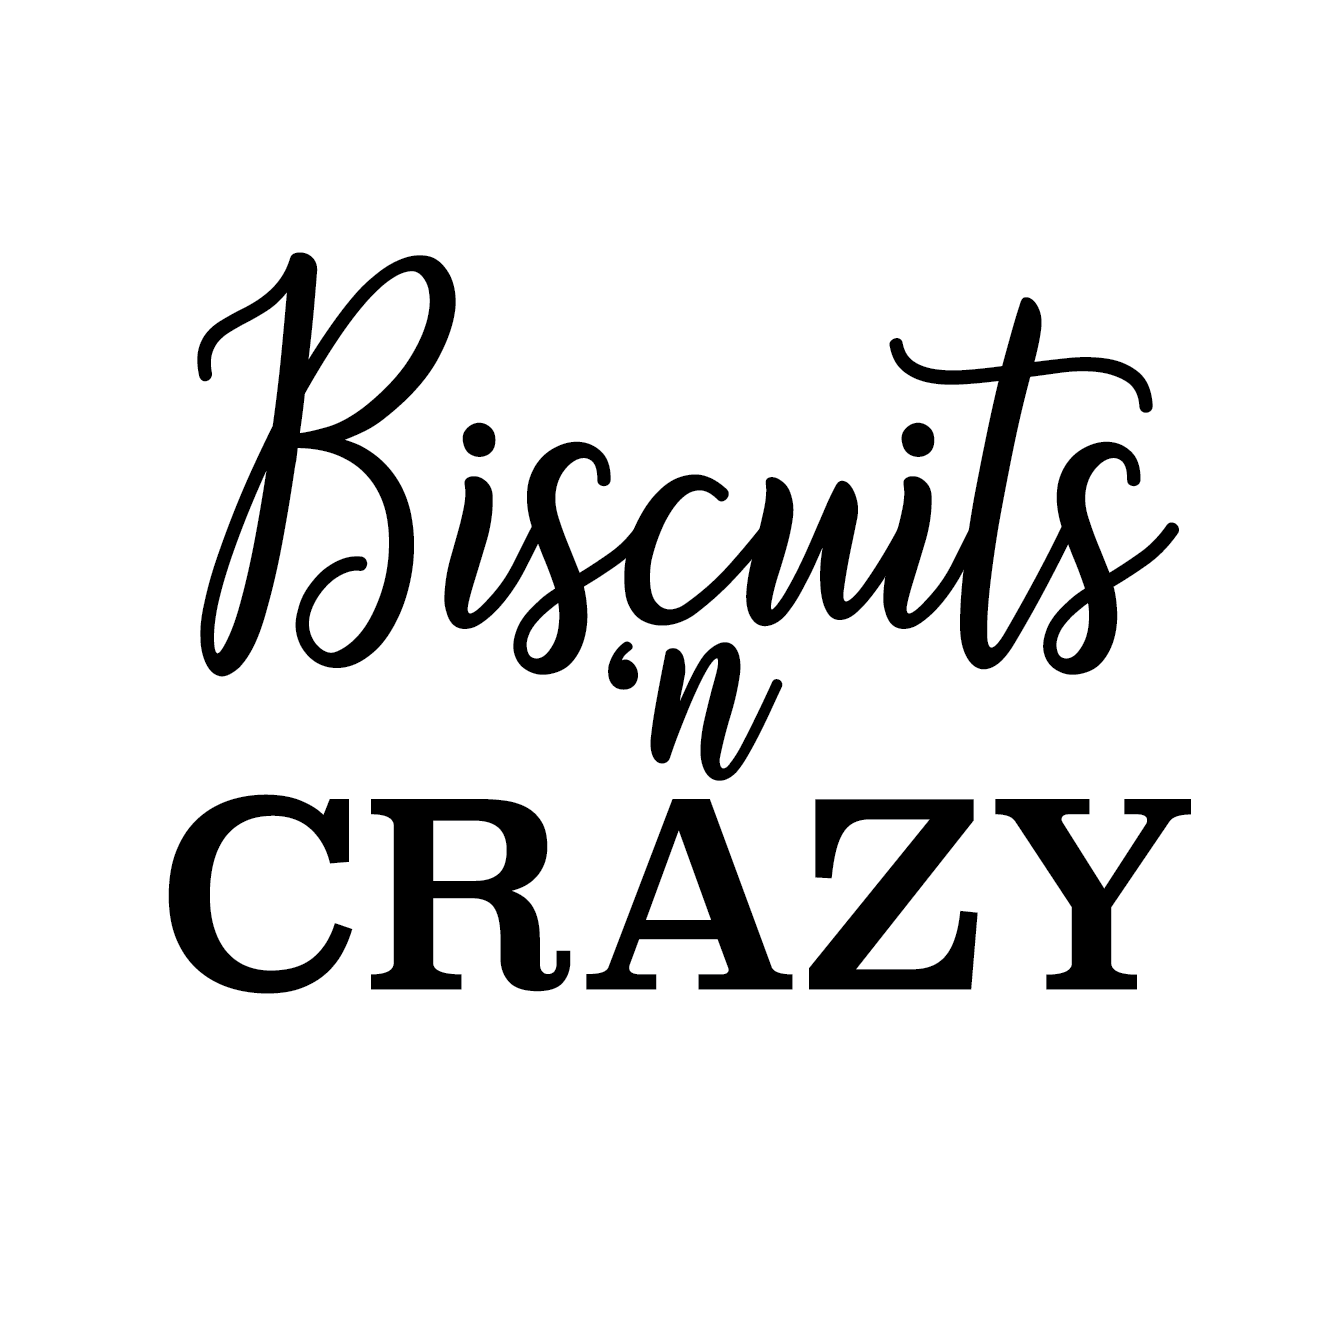 Biscuits 'n Crazy